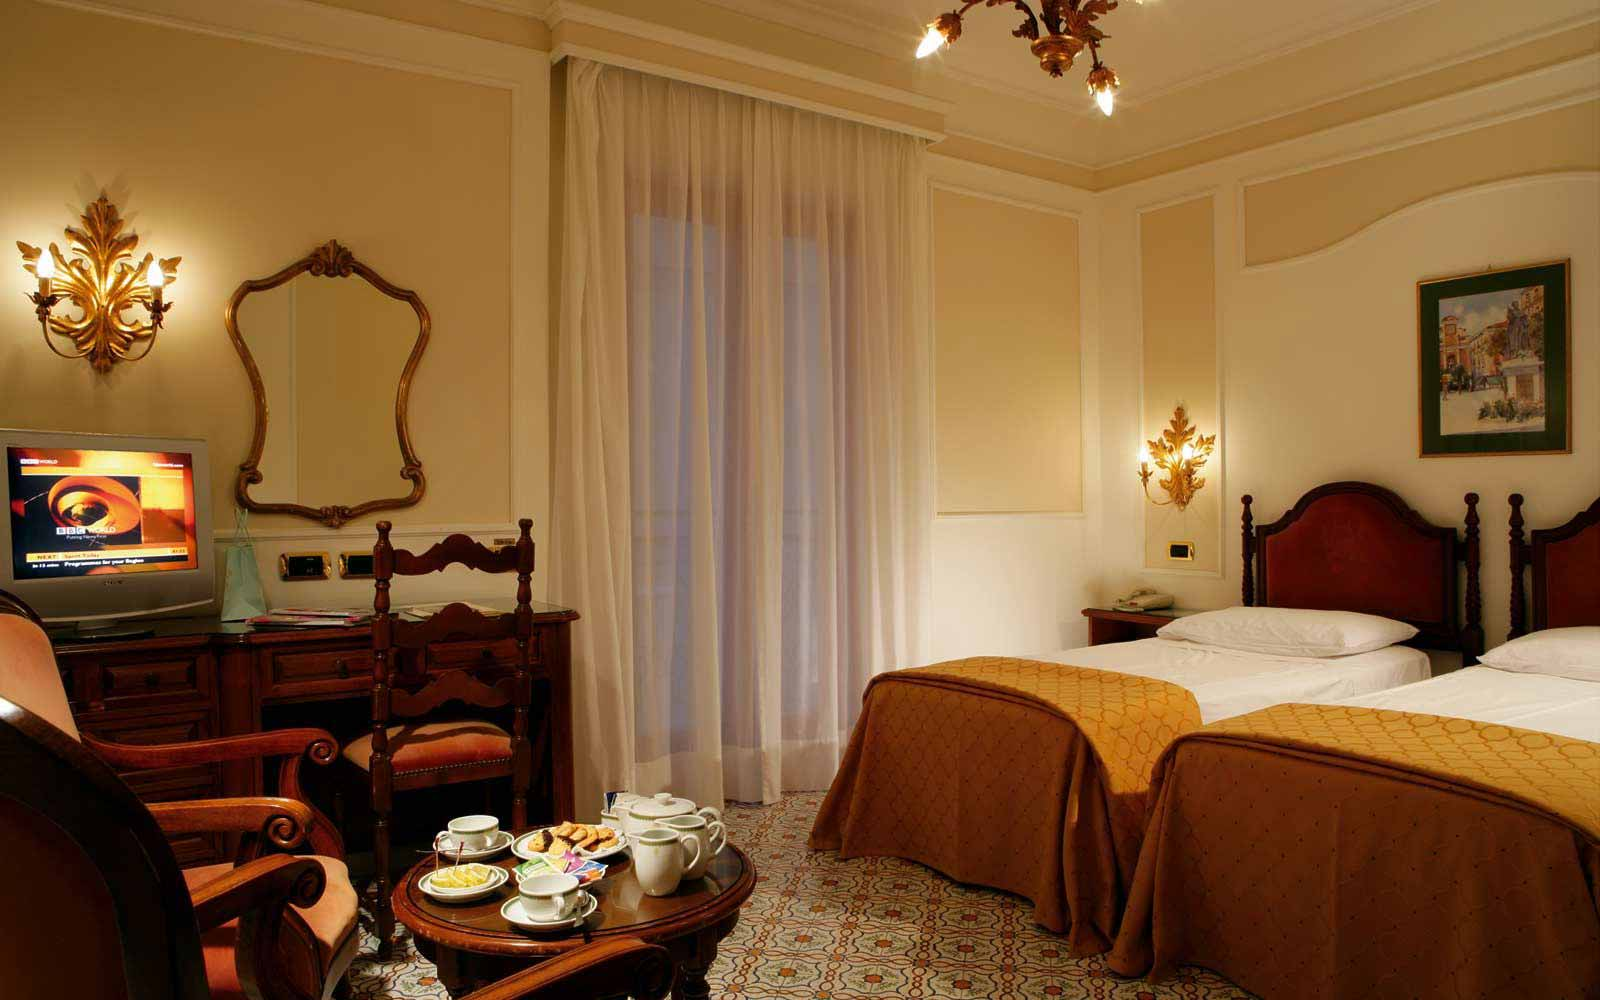 Double Room with a Balcony at Grand Hotel de la Ville